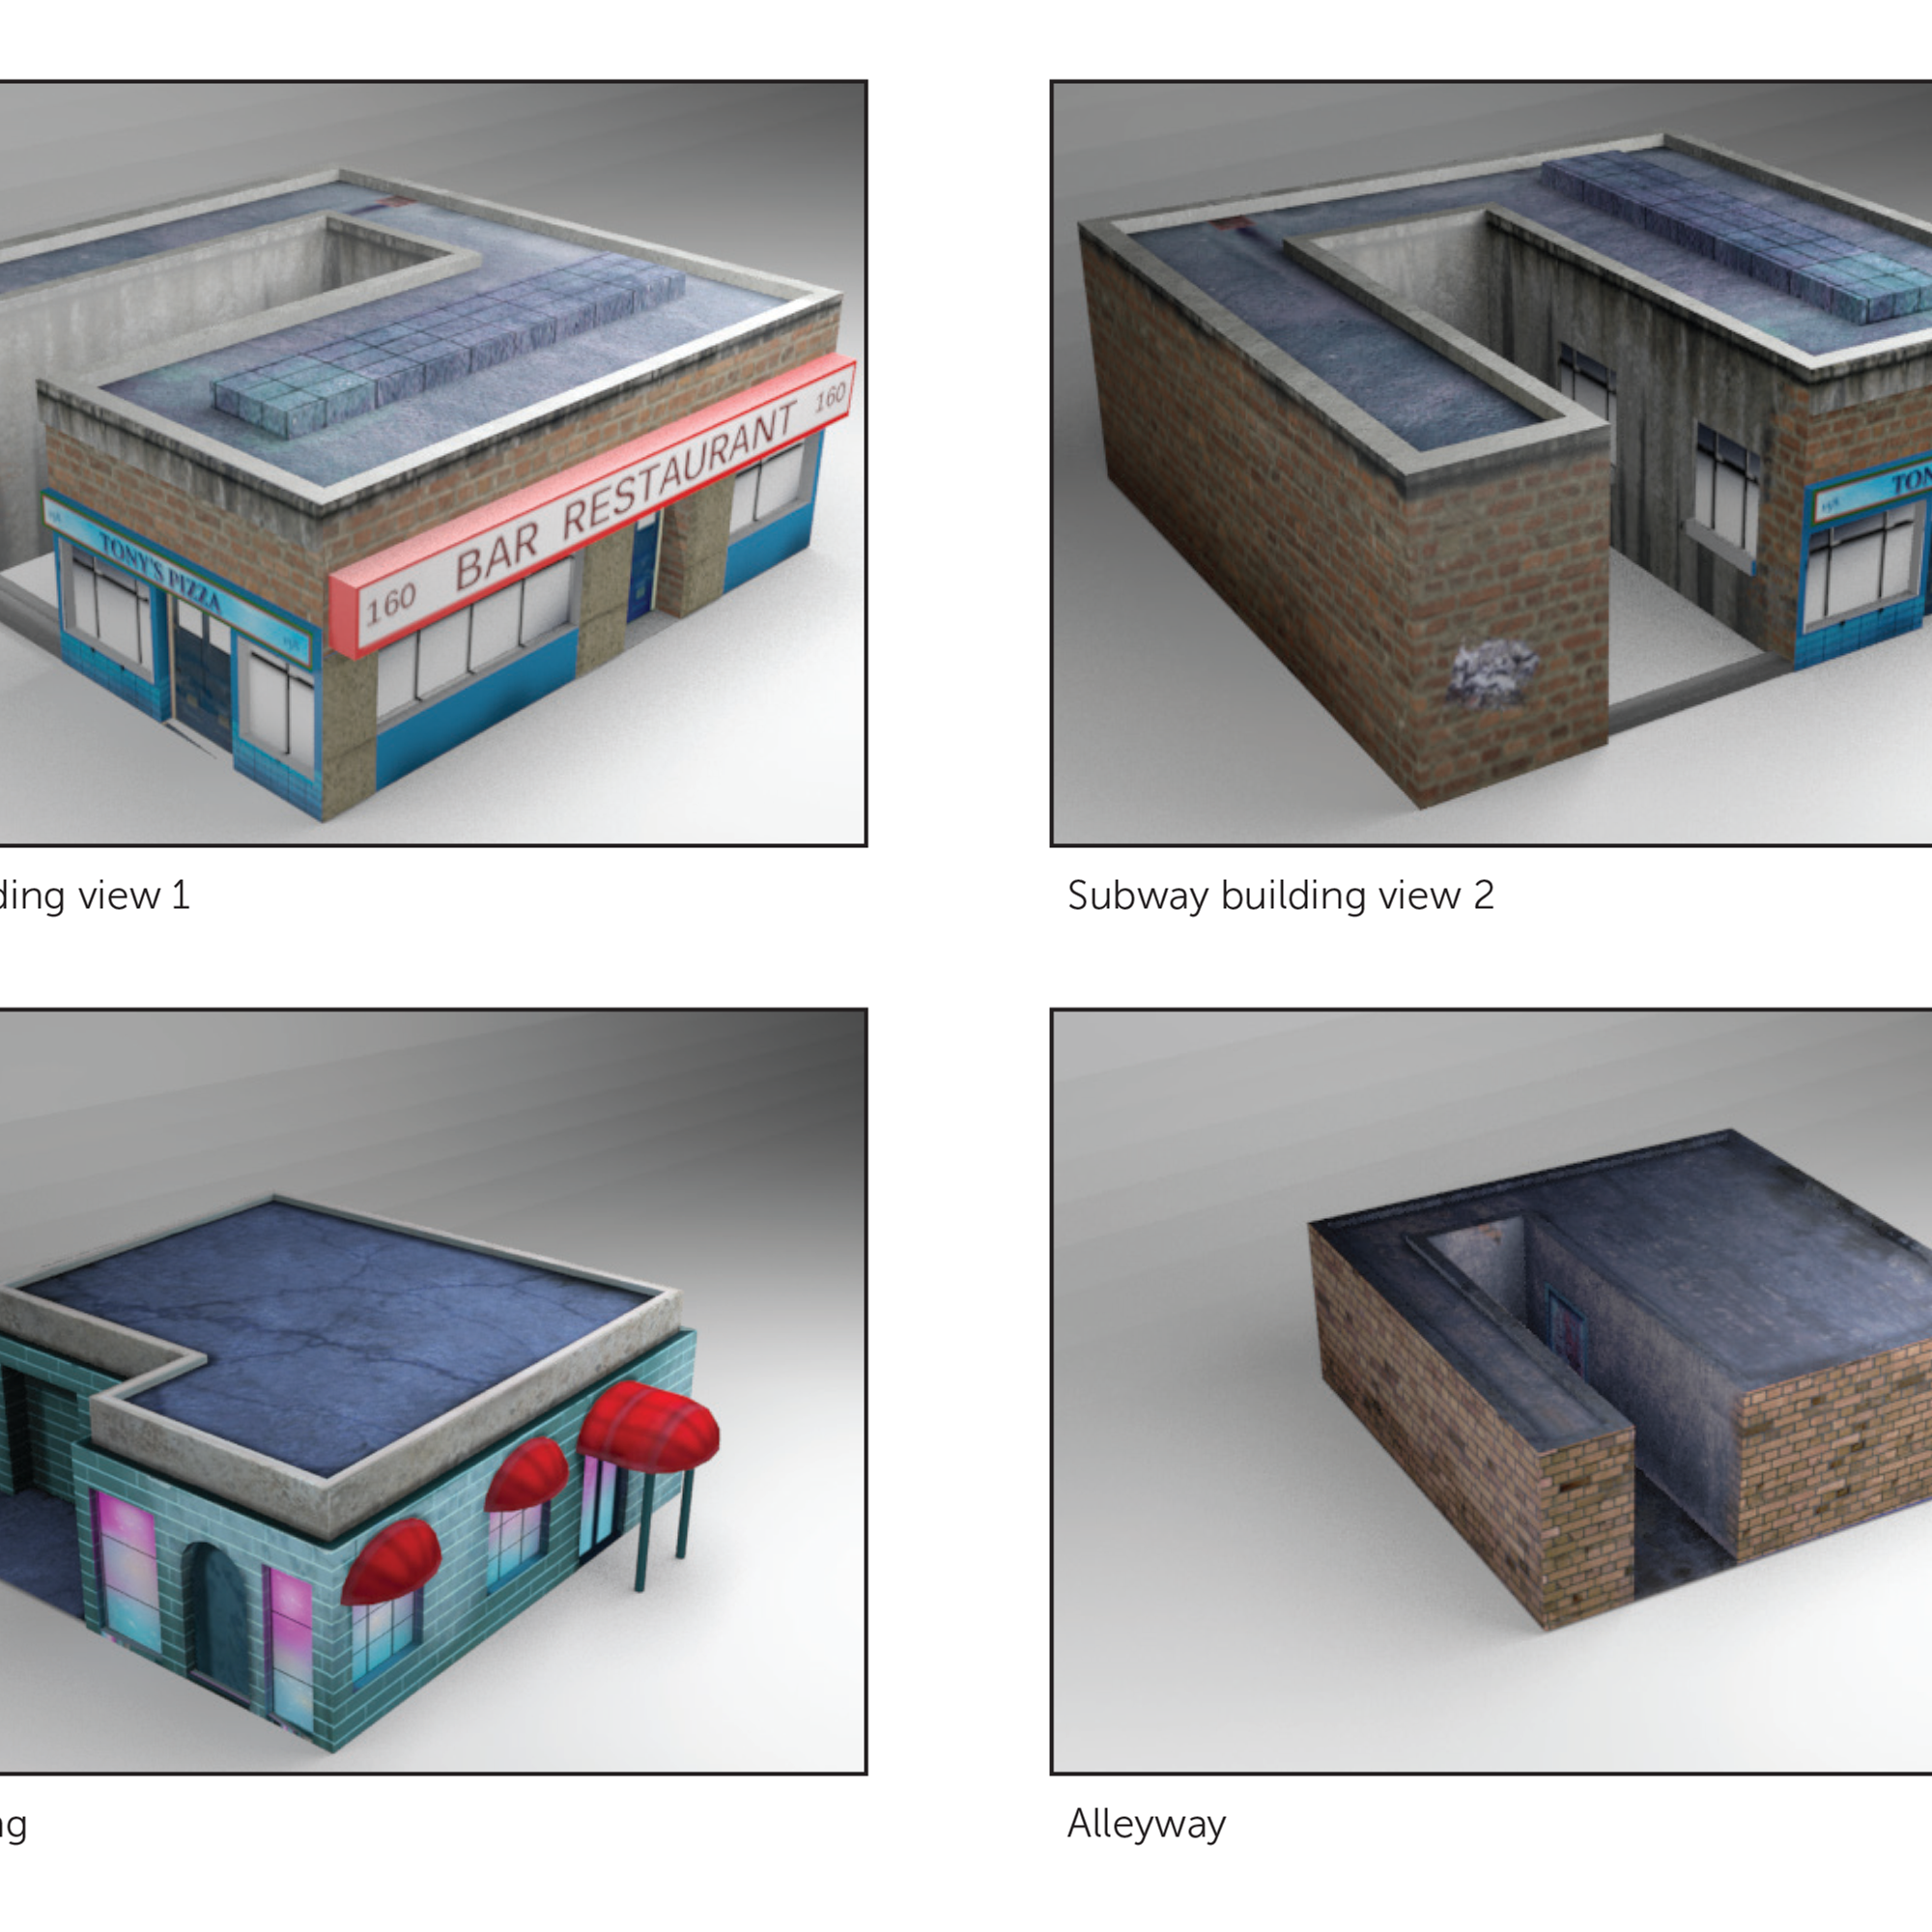 Level-props-buildings-01-2000-2000